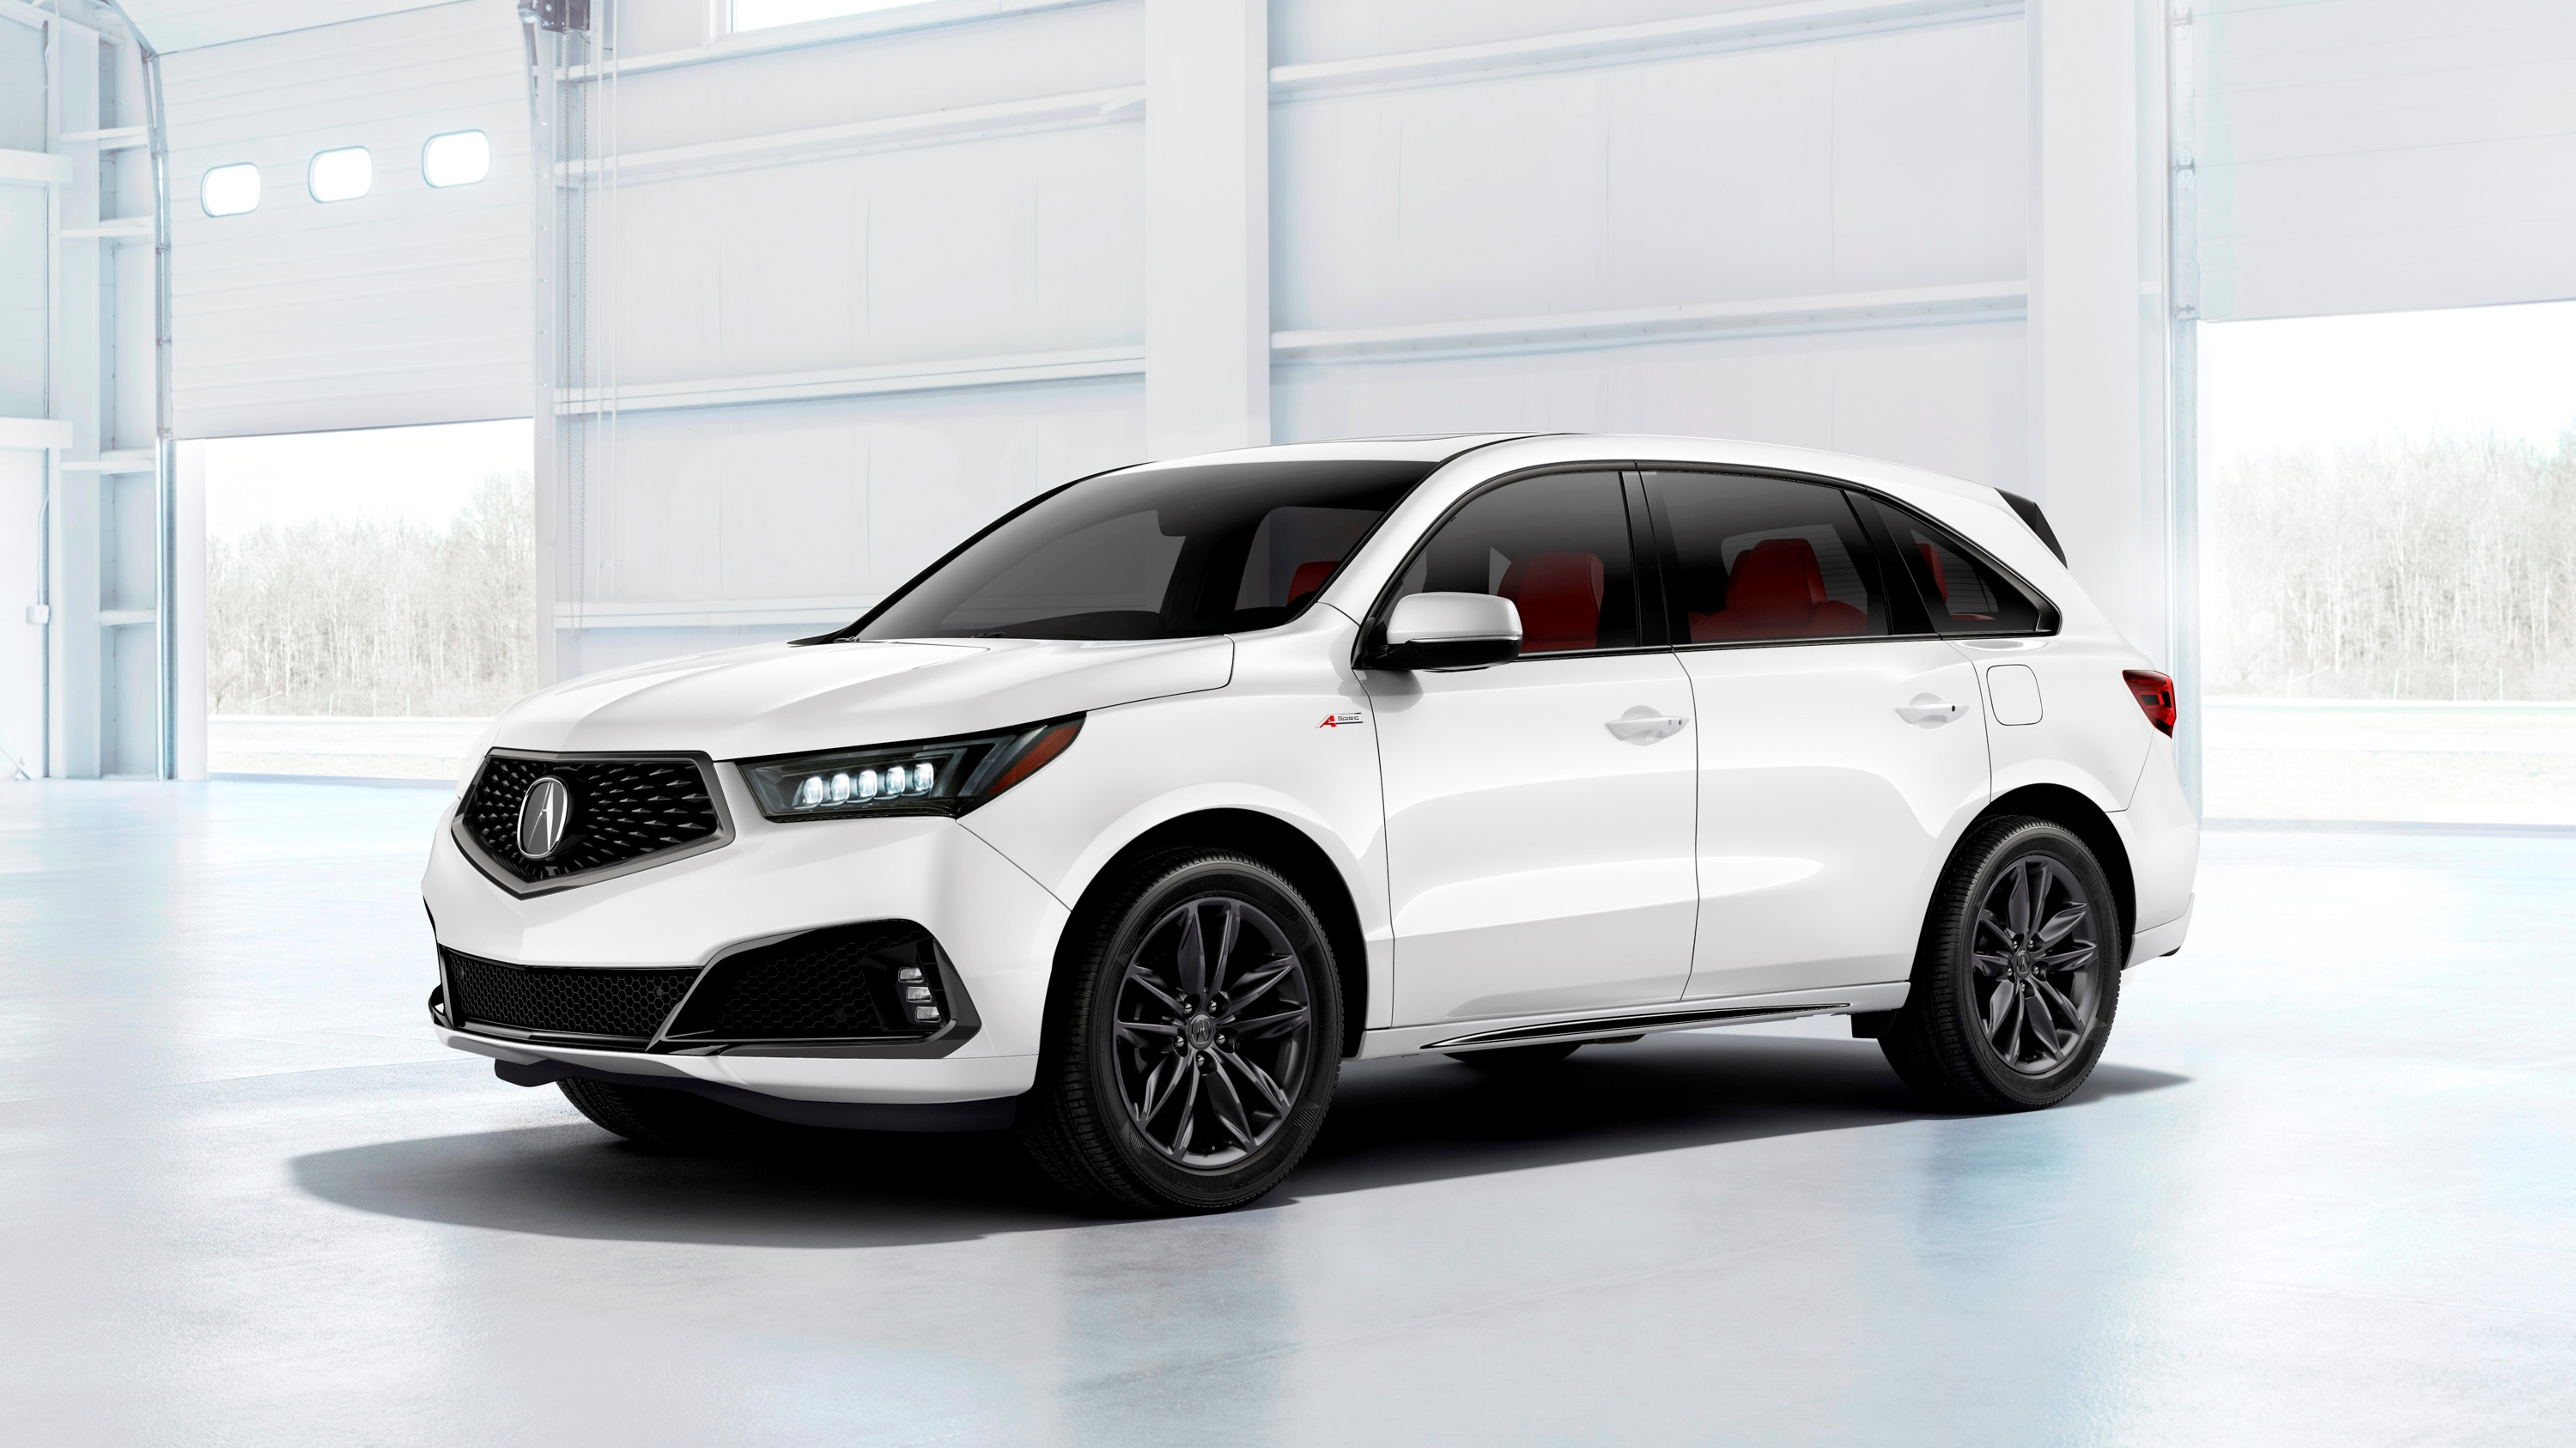 Acura Mdx Crossover Tlx Sedan Up For Redesigns Soon